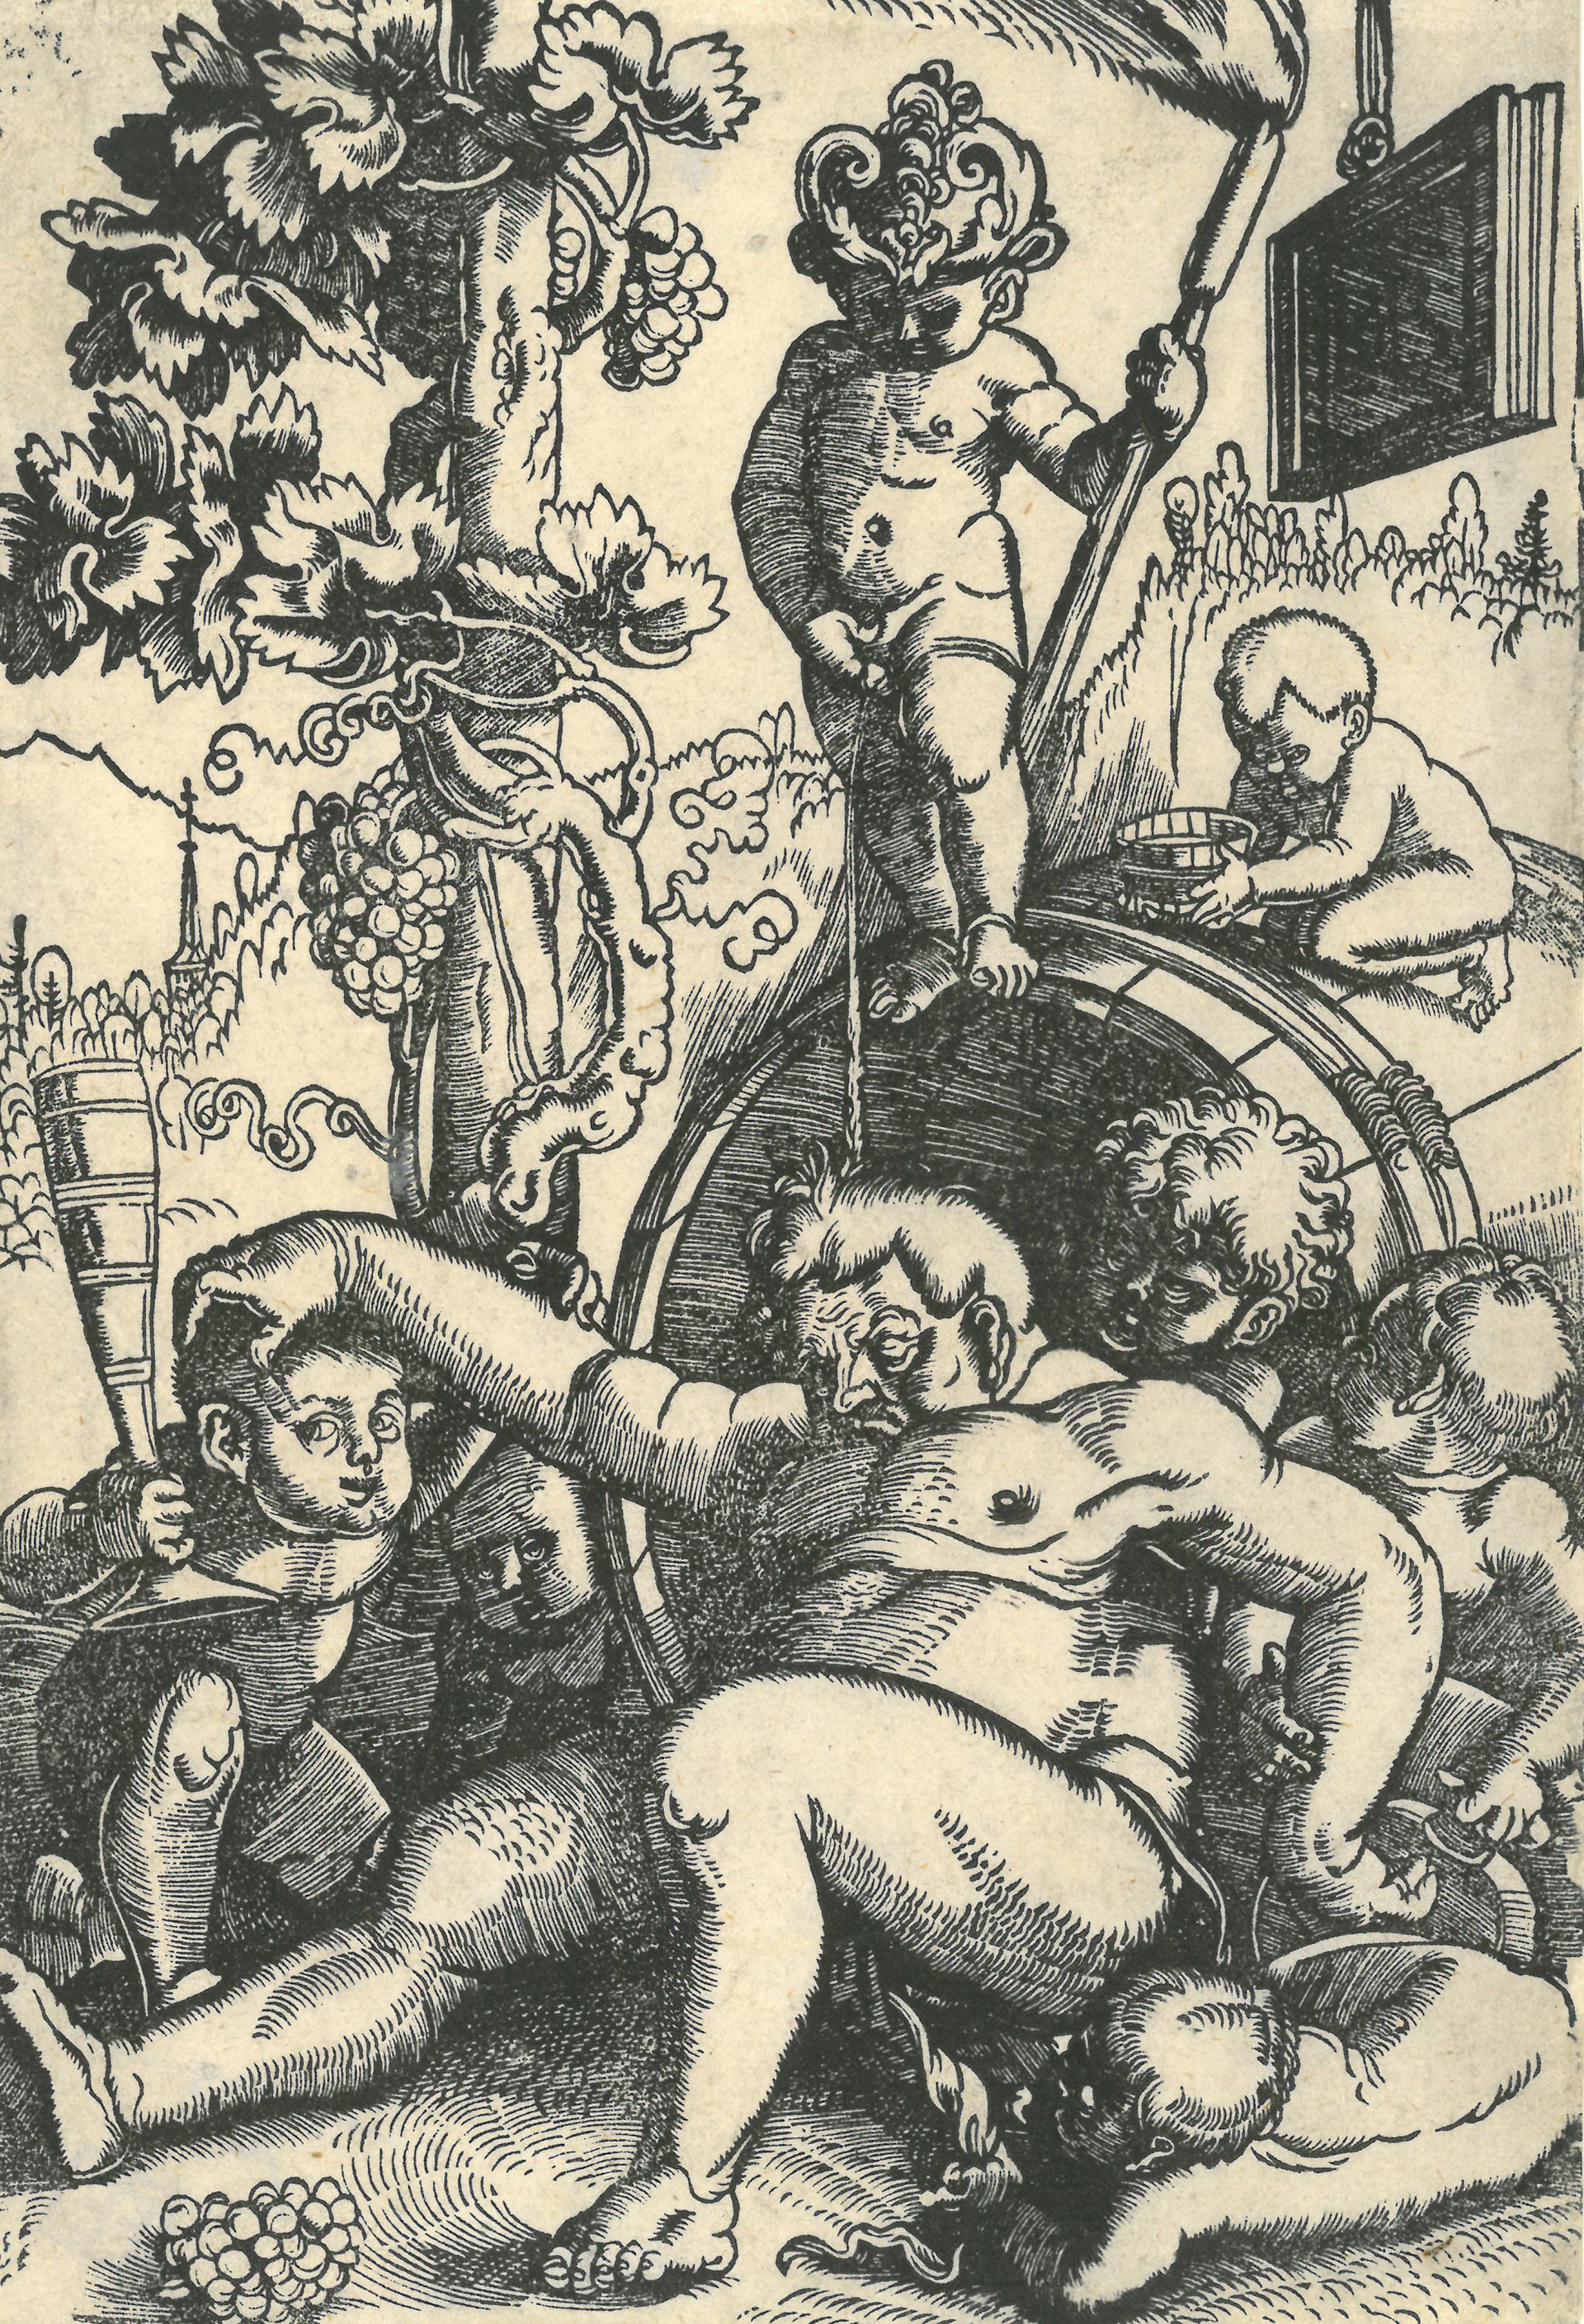 Image of Hans Baldung Grien: The Drunken Bacchus, 1520